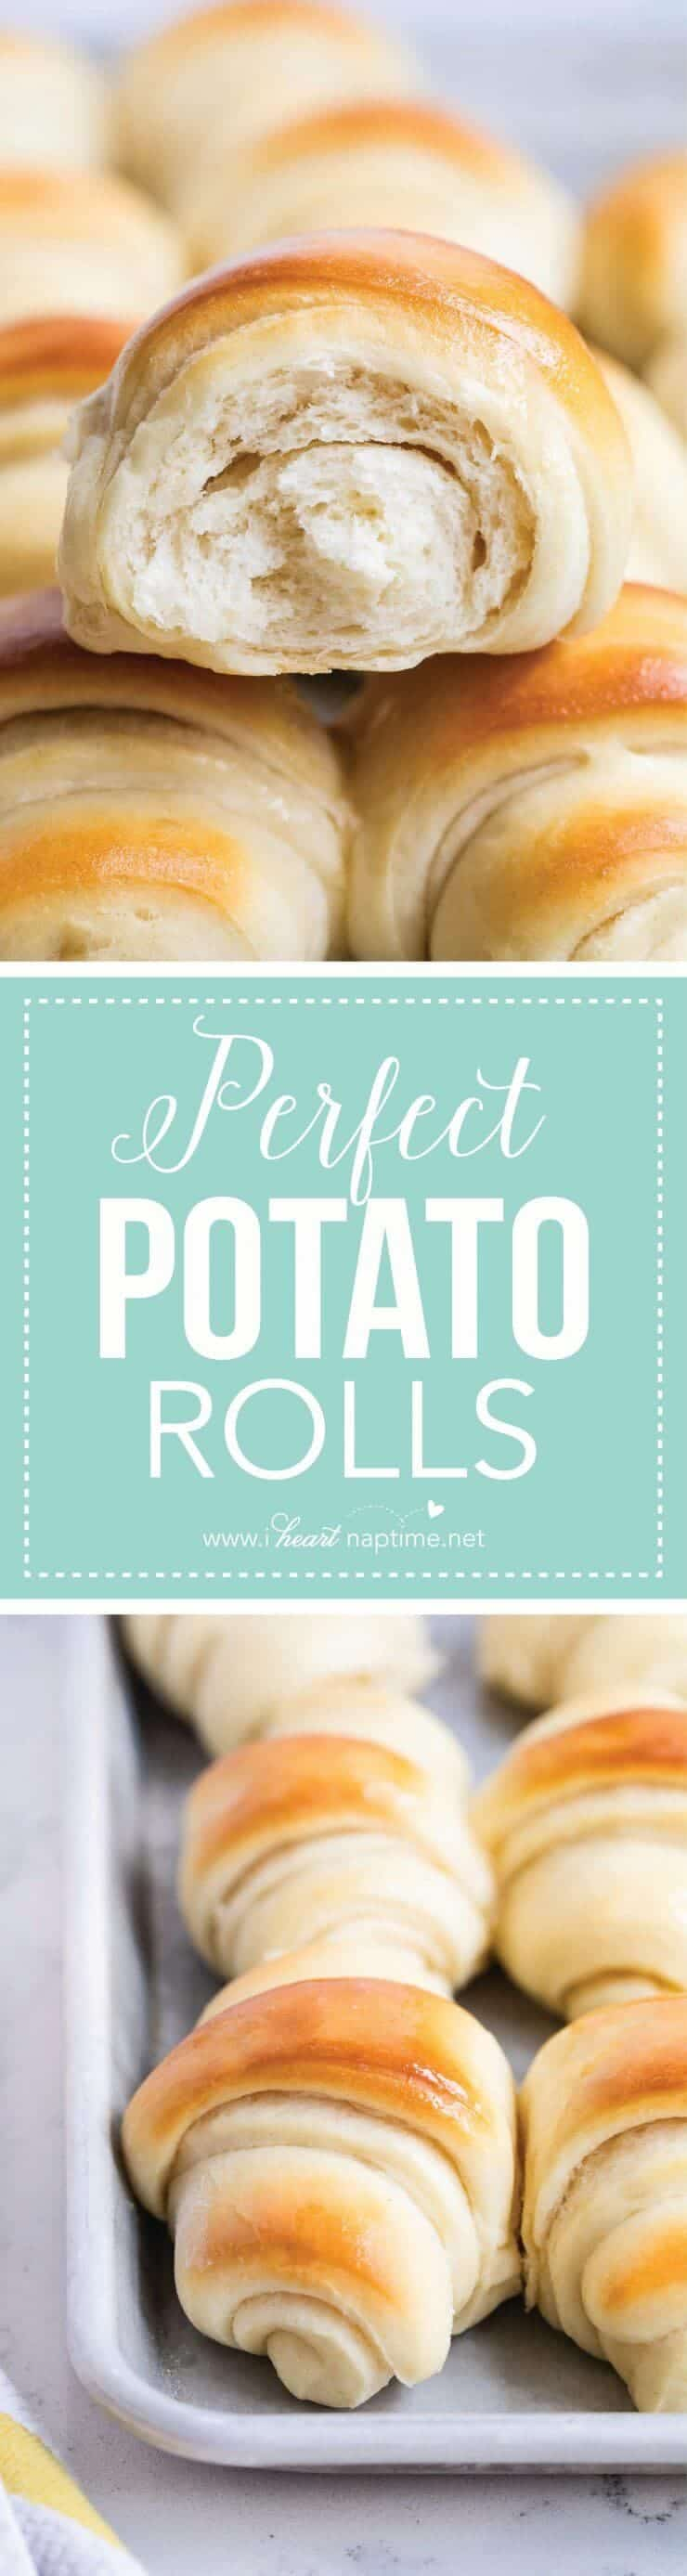 Perfect Potato Rolls Recipe ...these rolls are so tender and soft with an amazing flavor. The perfect dinner roll for any occasion!